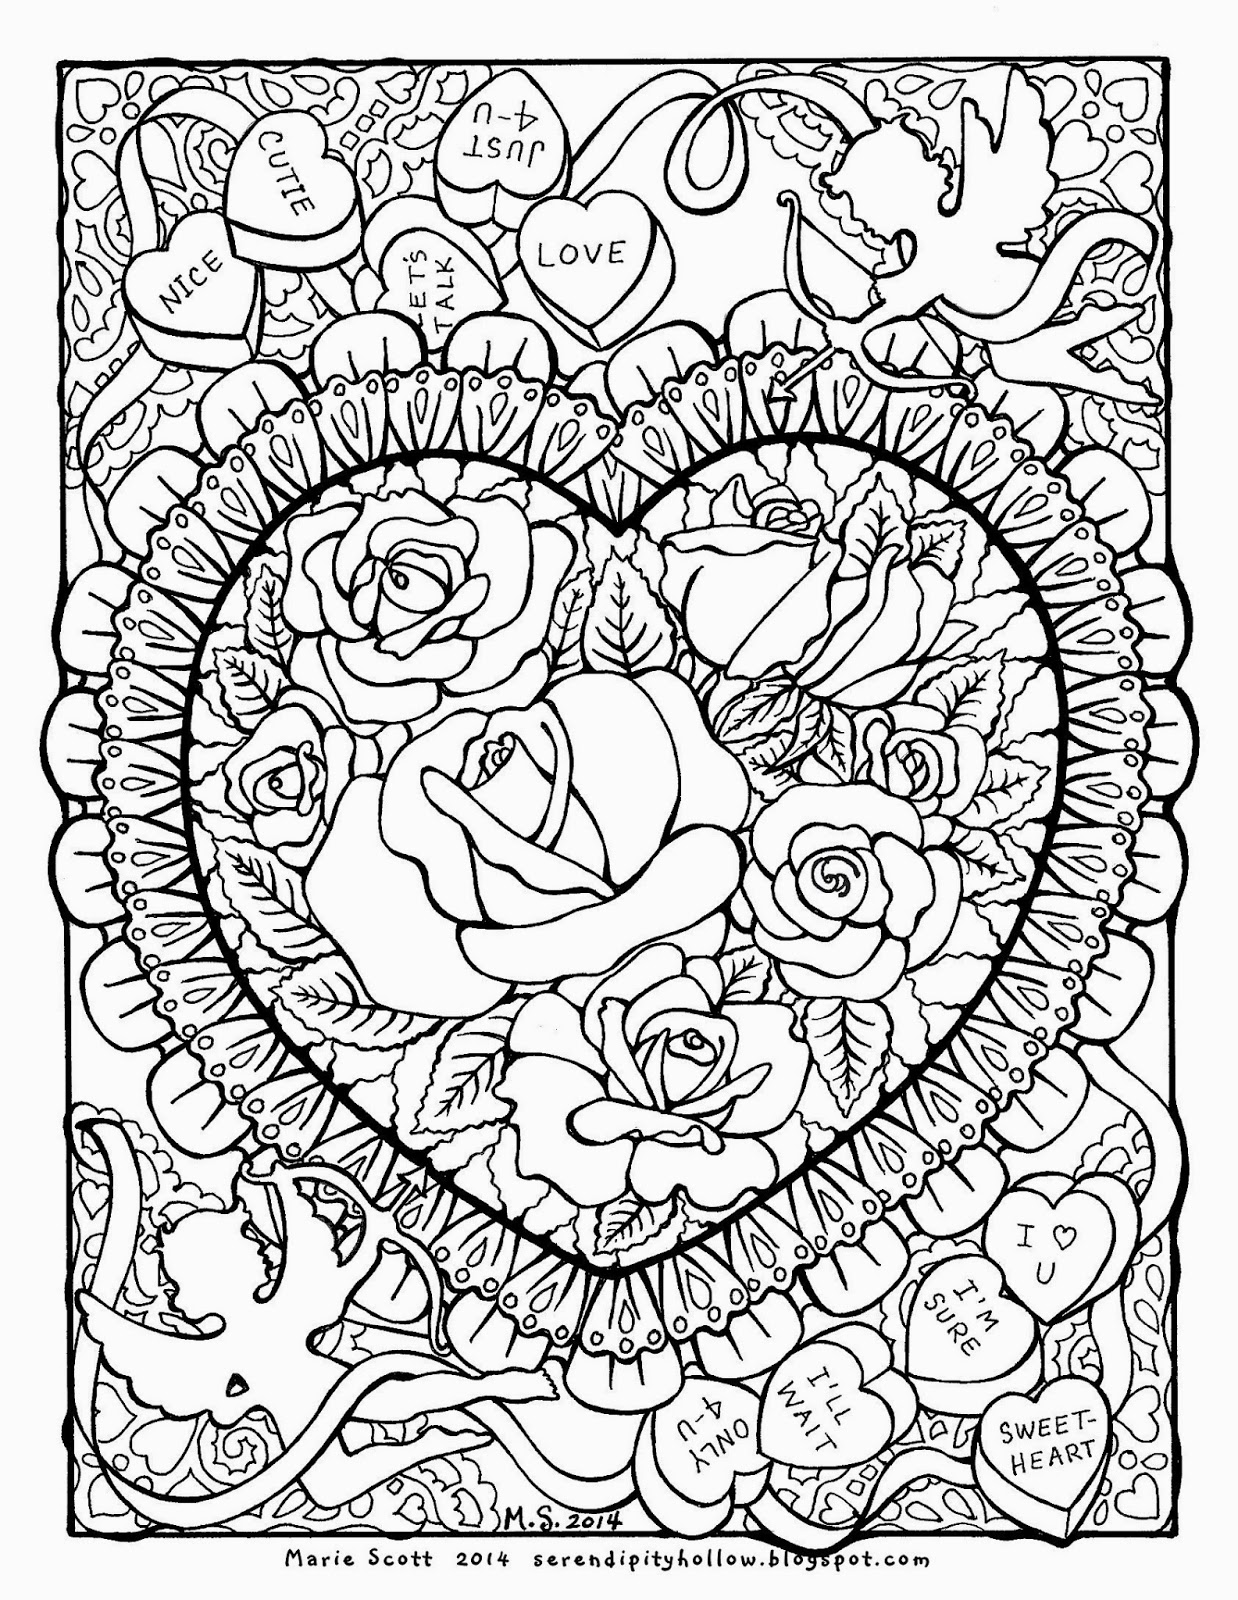 Serendipity Hollow: Coloring book Page . . . February